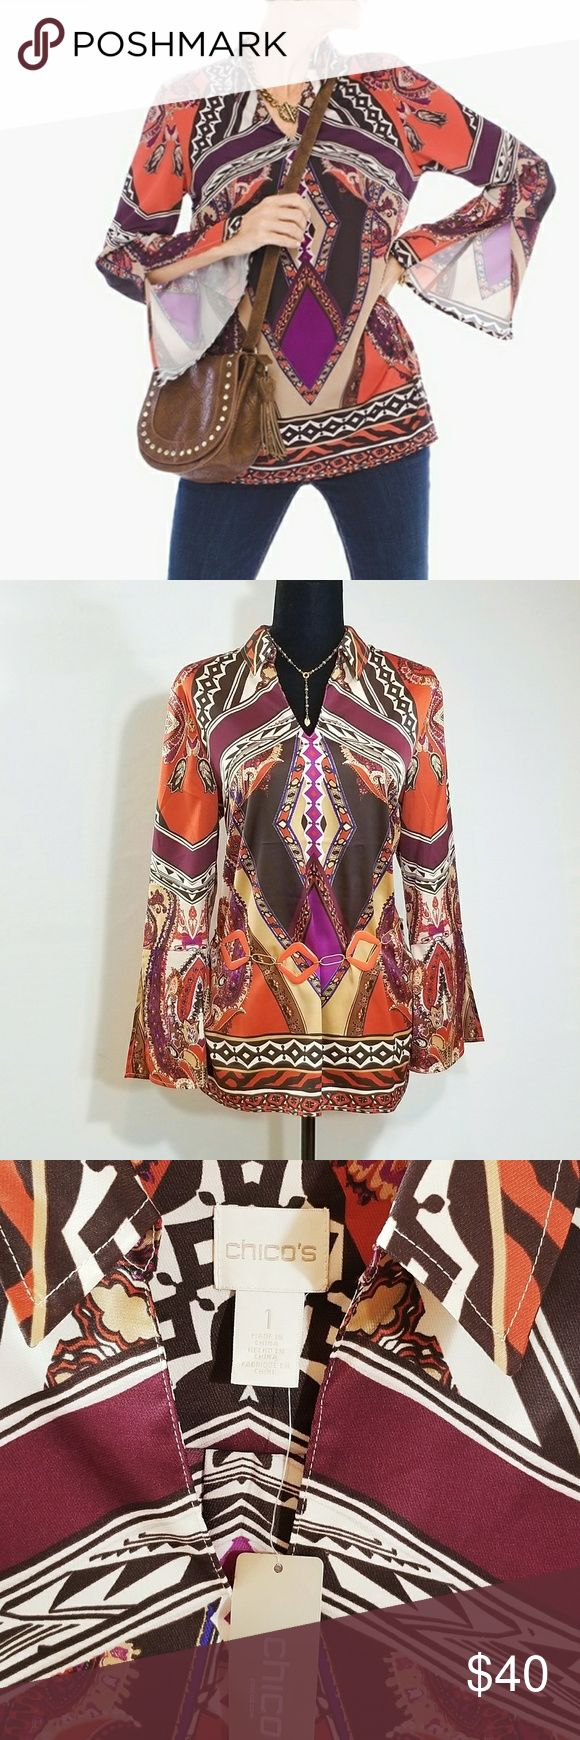 """Chico's Flowing Tunic Scarf Print w/Enamel Belt M NWT Chico's Sun Canyon tunic has flowing sleeves with split cuff styling. Scarf print tunic comes with coral enamel and gold tone chain belt. The tunic is NWT, the belt I have added for free because I think it looks great together, belt is preloved & gently worn. Chico's size 1; online chart says this is equal to 8/10. Please know Chico's clothes run large. I wear a large and can easily fit into this top. Belt 40""""long. Tunic armpit to armpit…"""